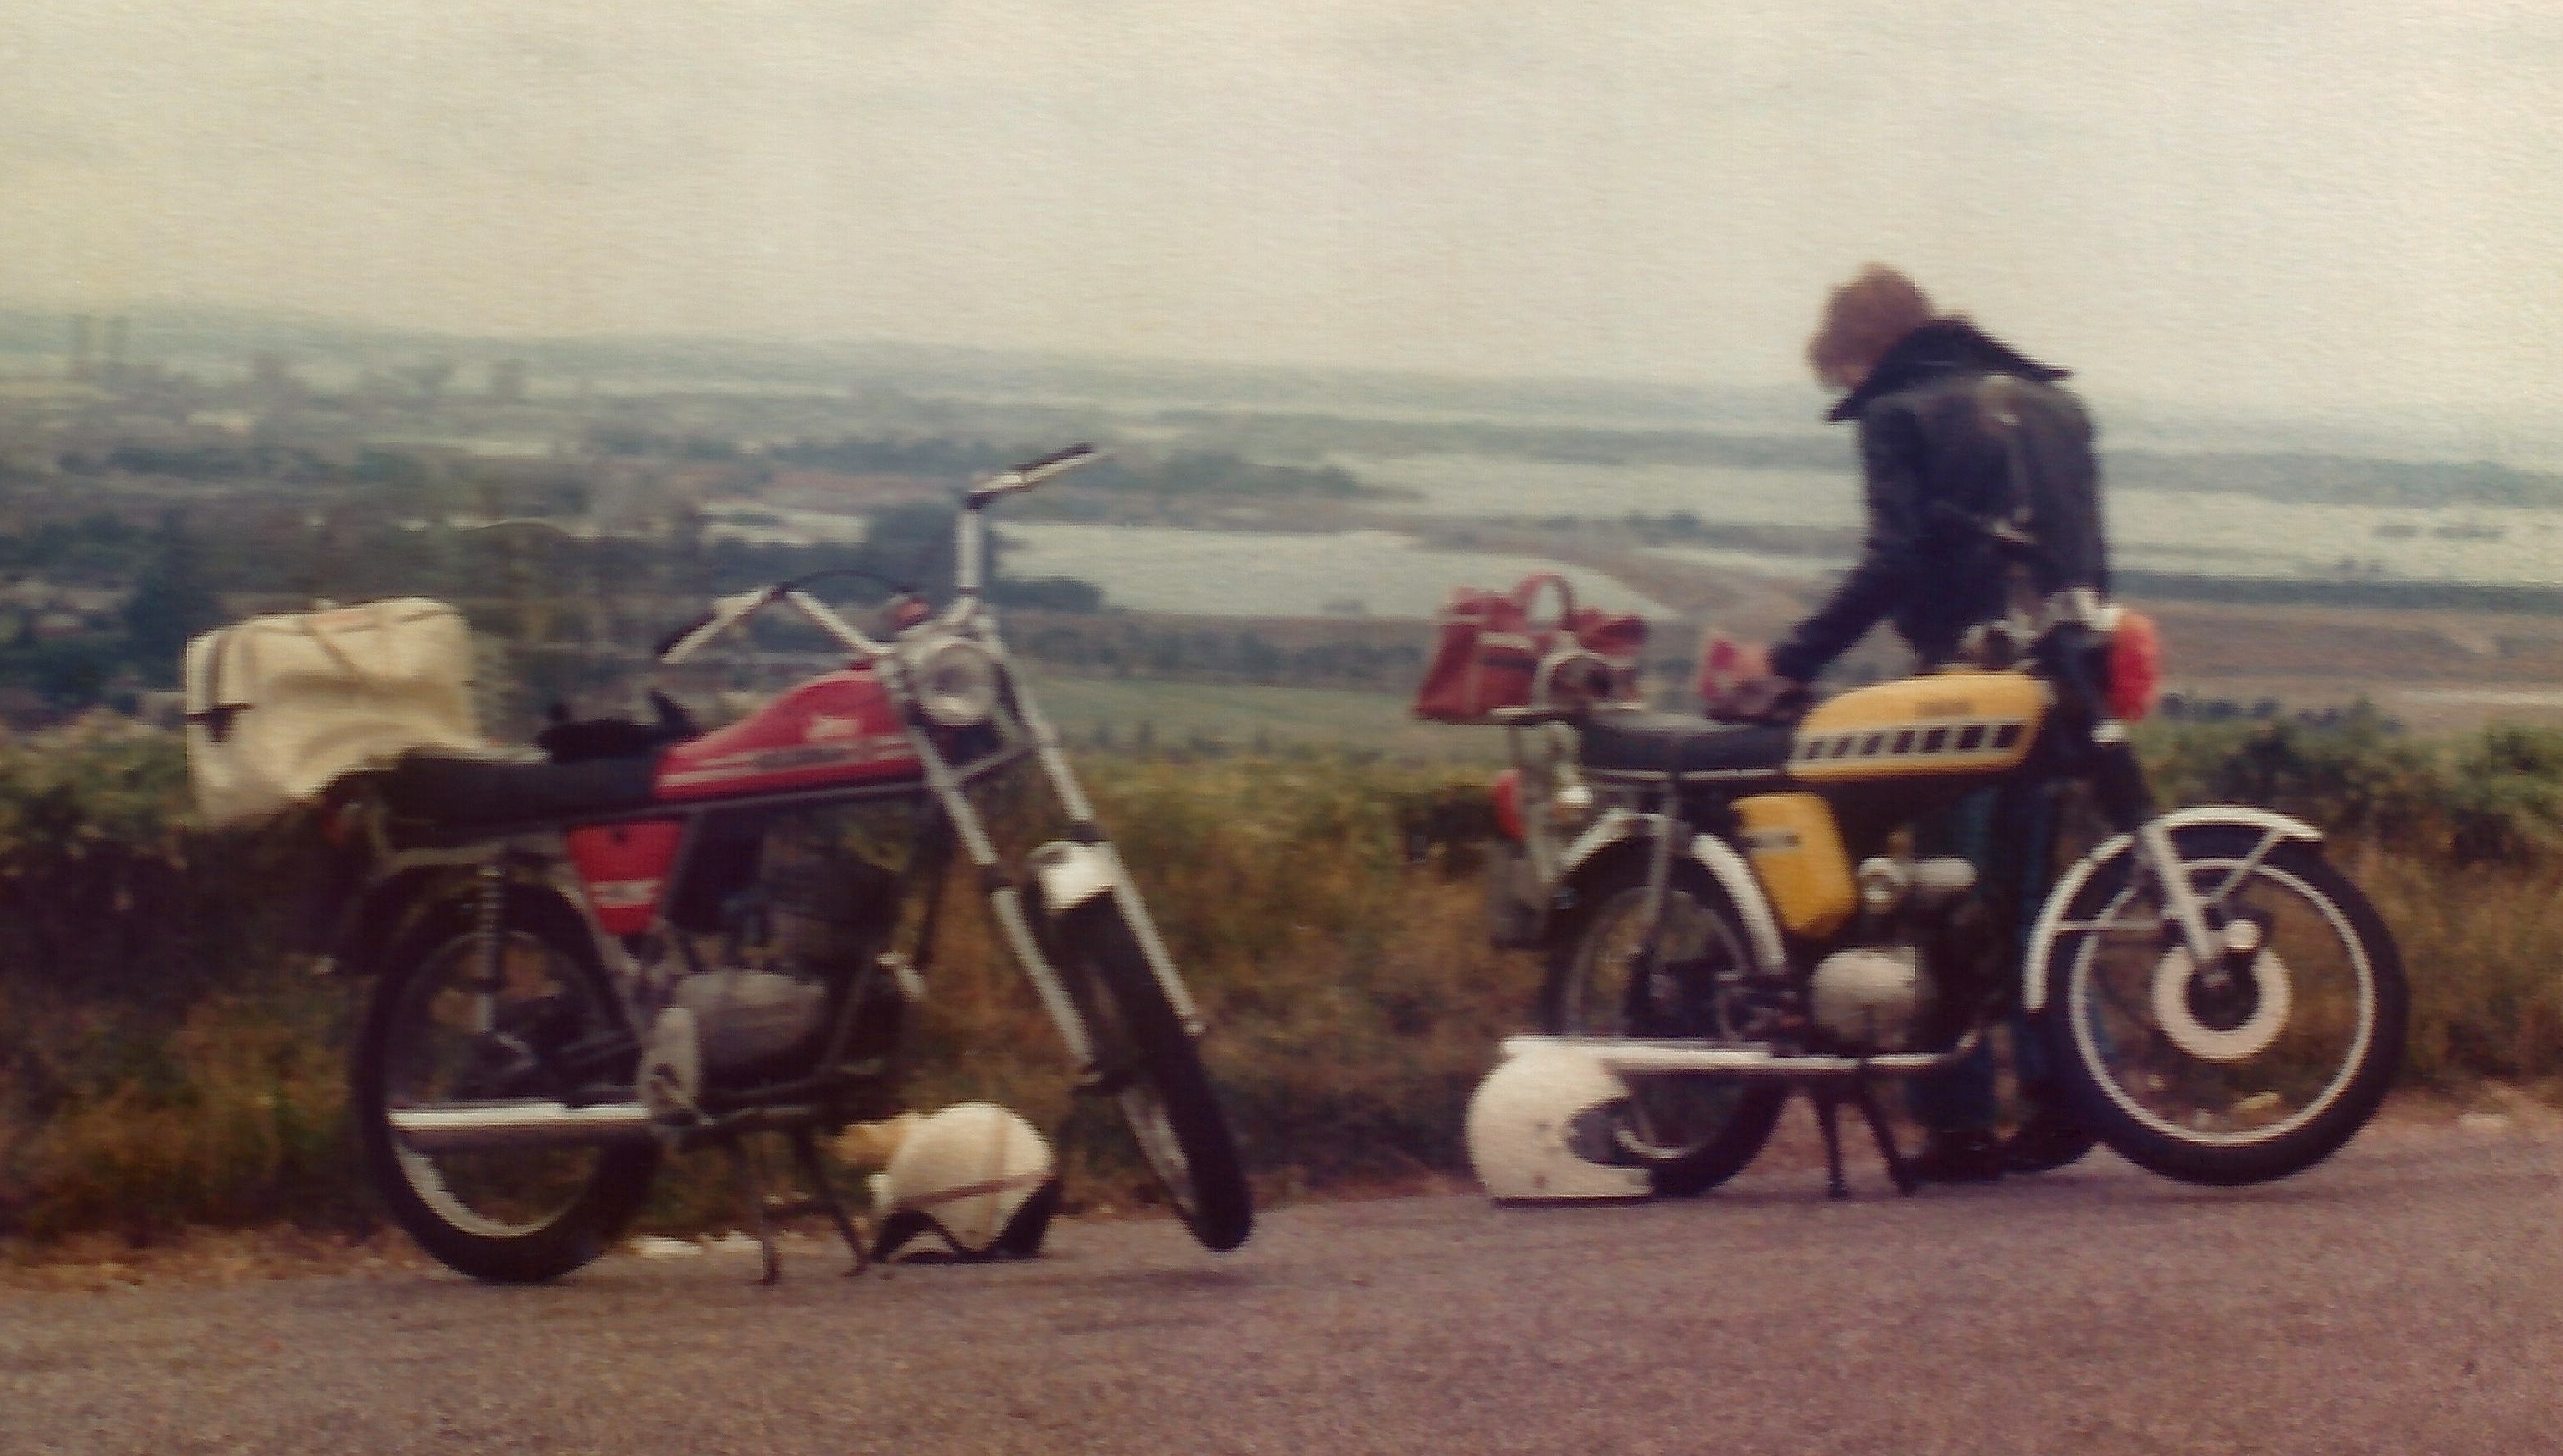 Two mopeds are parked overlooking a large coastal town.  A red Gilera 50 Touring moped on the left and a yellow Yamaha FS1E have luggage backs packed on the rear. A leather jacketed rider is checking out something on the seat of the Yamaha